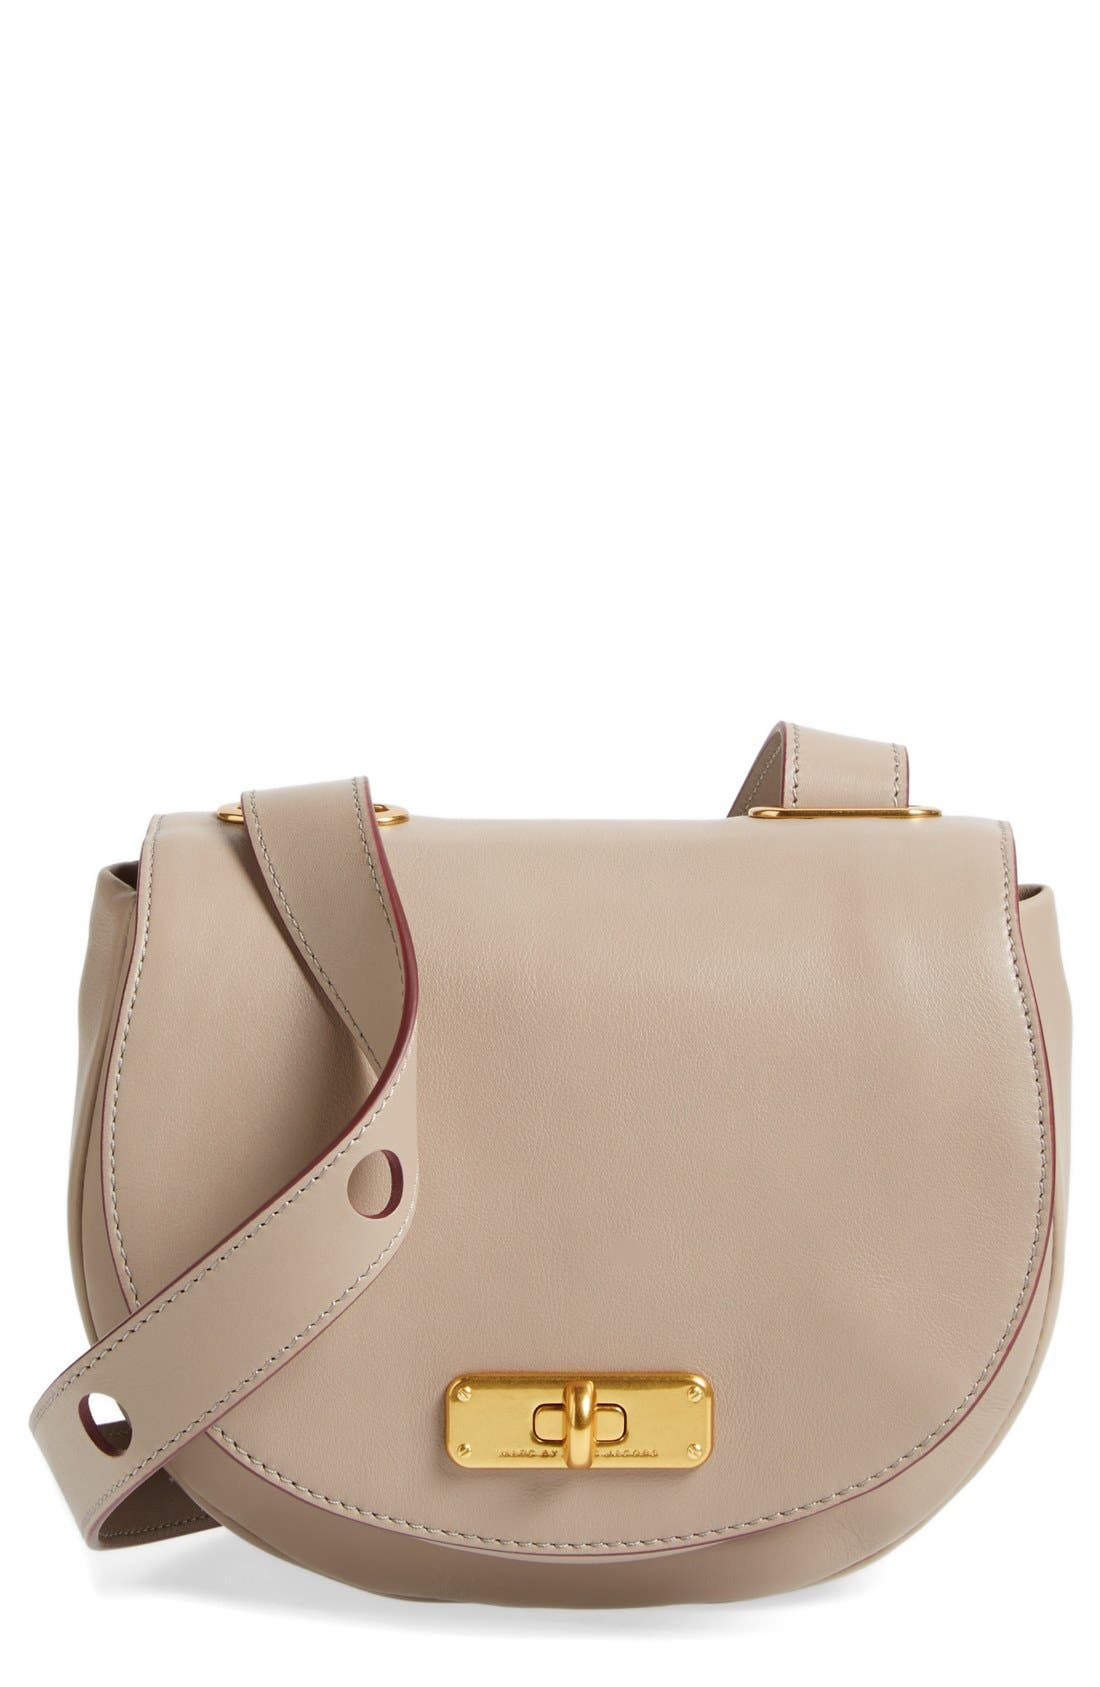 Alternate Image 1 Selected - MARC BY MARC JACOBS 'Donut' Leather Crossbody Bag